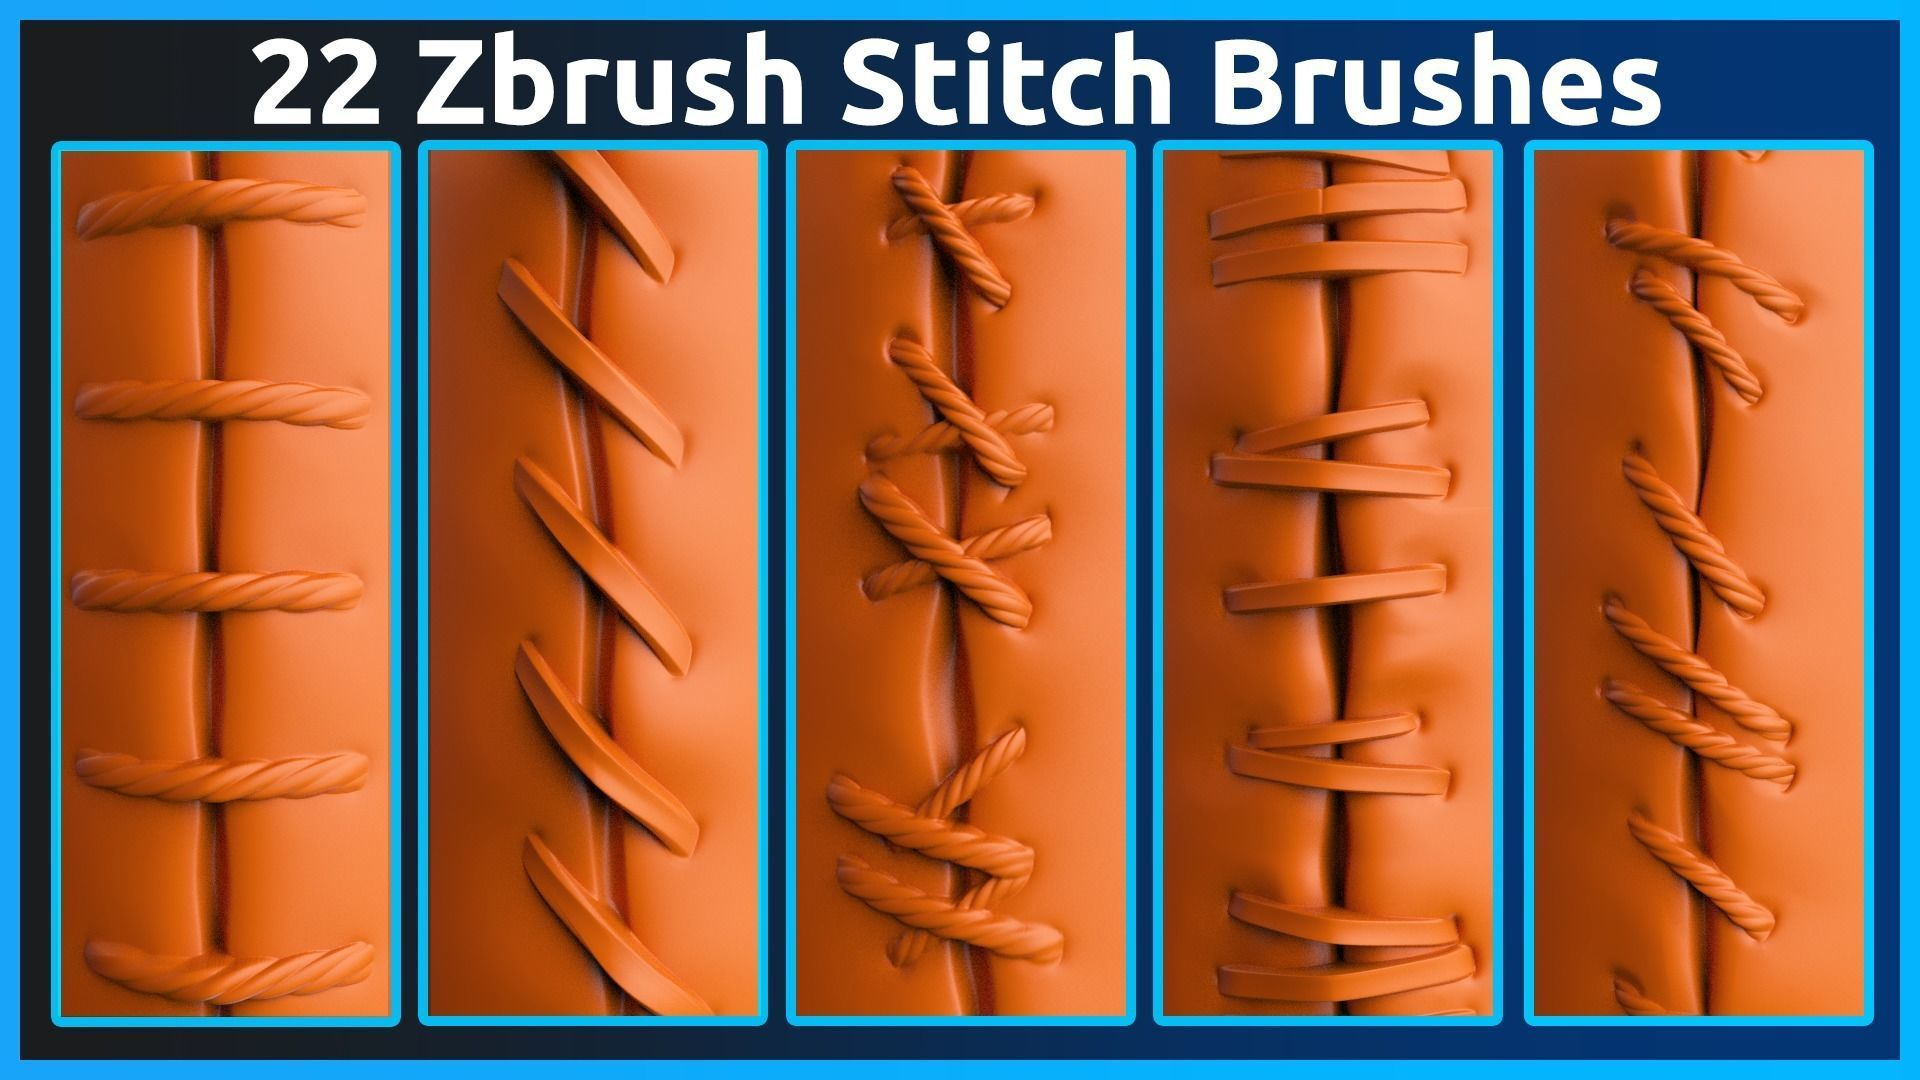 22 Zbrush Stitch Brushes